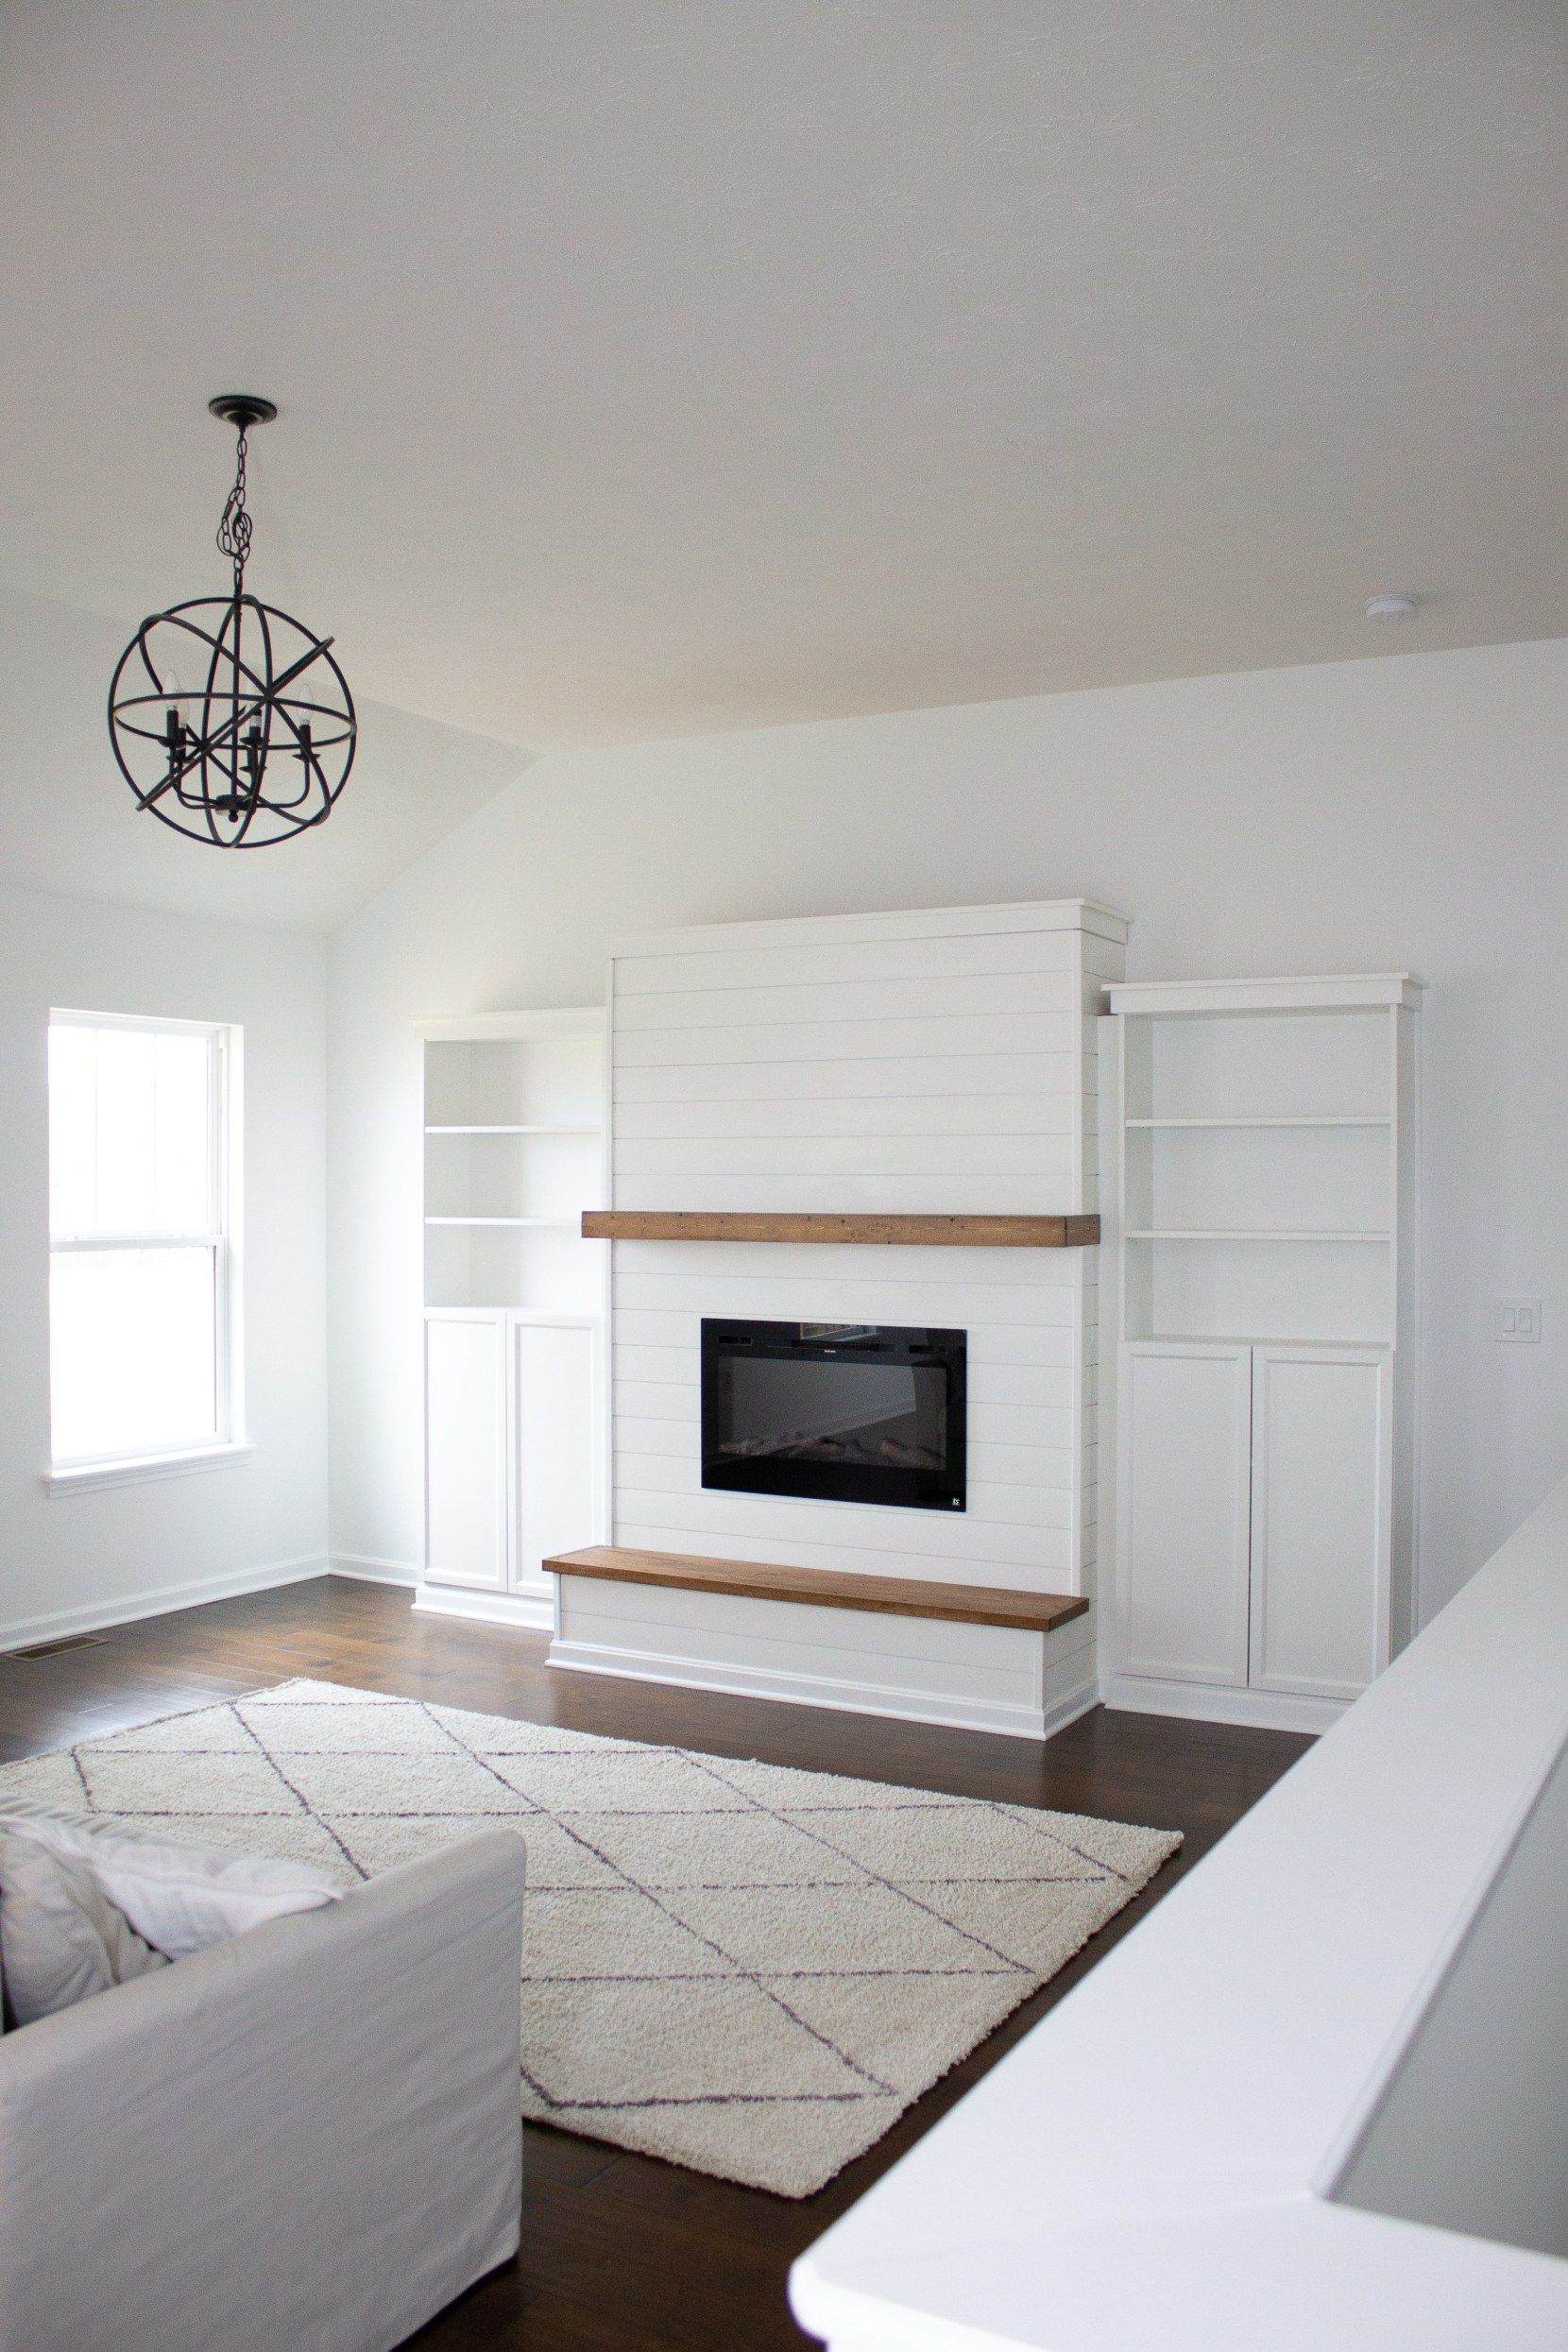 Diy Electric Fireplace With Built In Bookshelves Diy Electric Fireplace With Built In Bookshelves In 2020 Fireplace Built Ins Living Room Built Ins Diy Fireplace